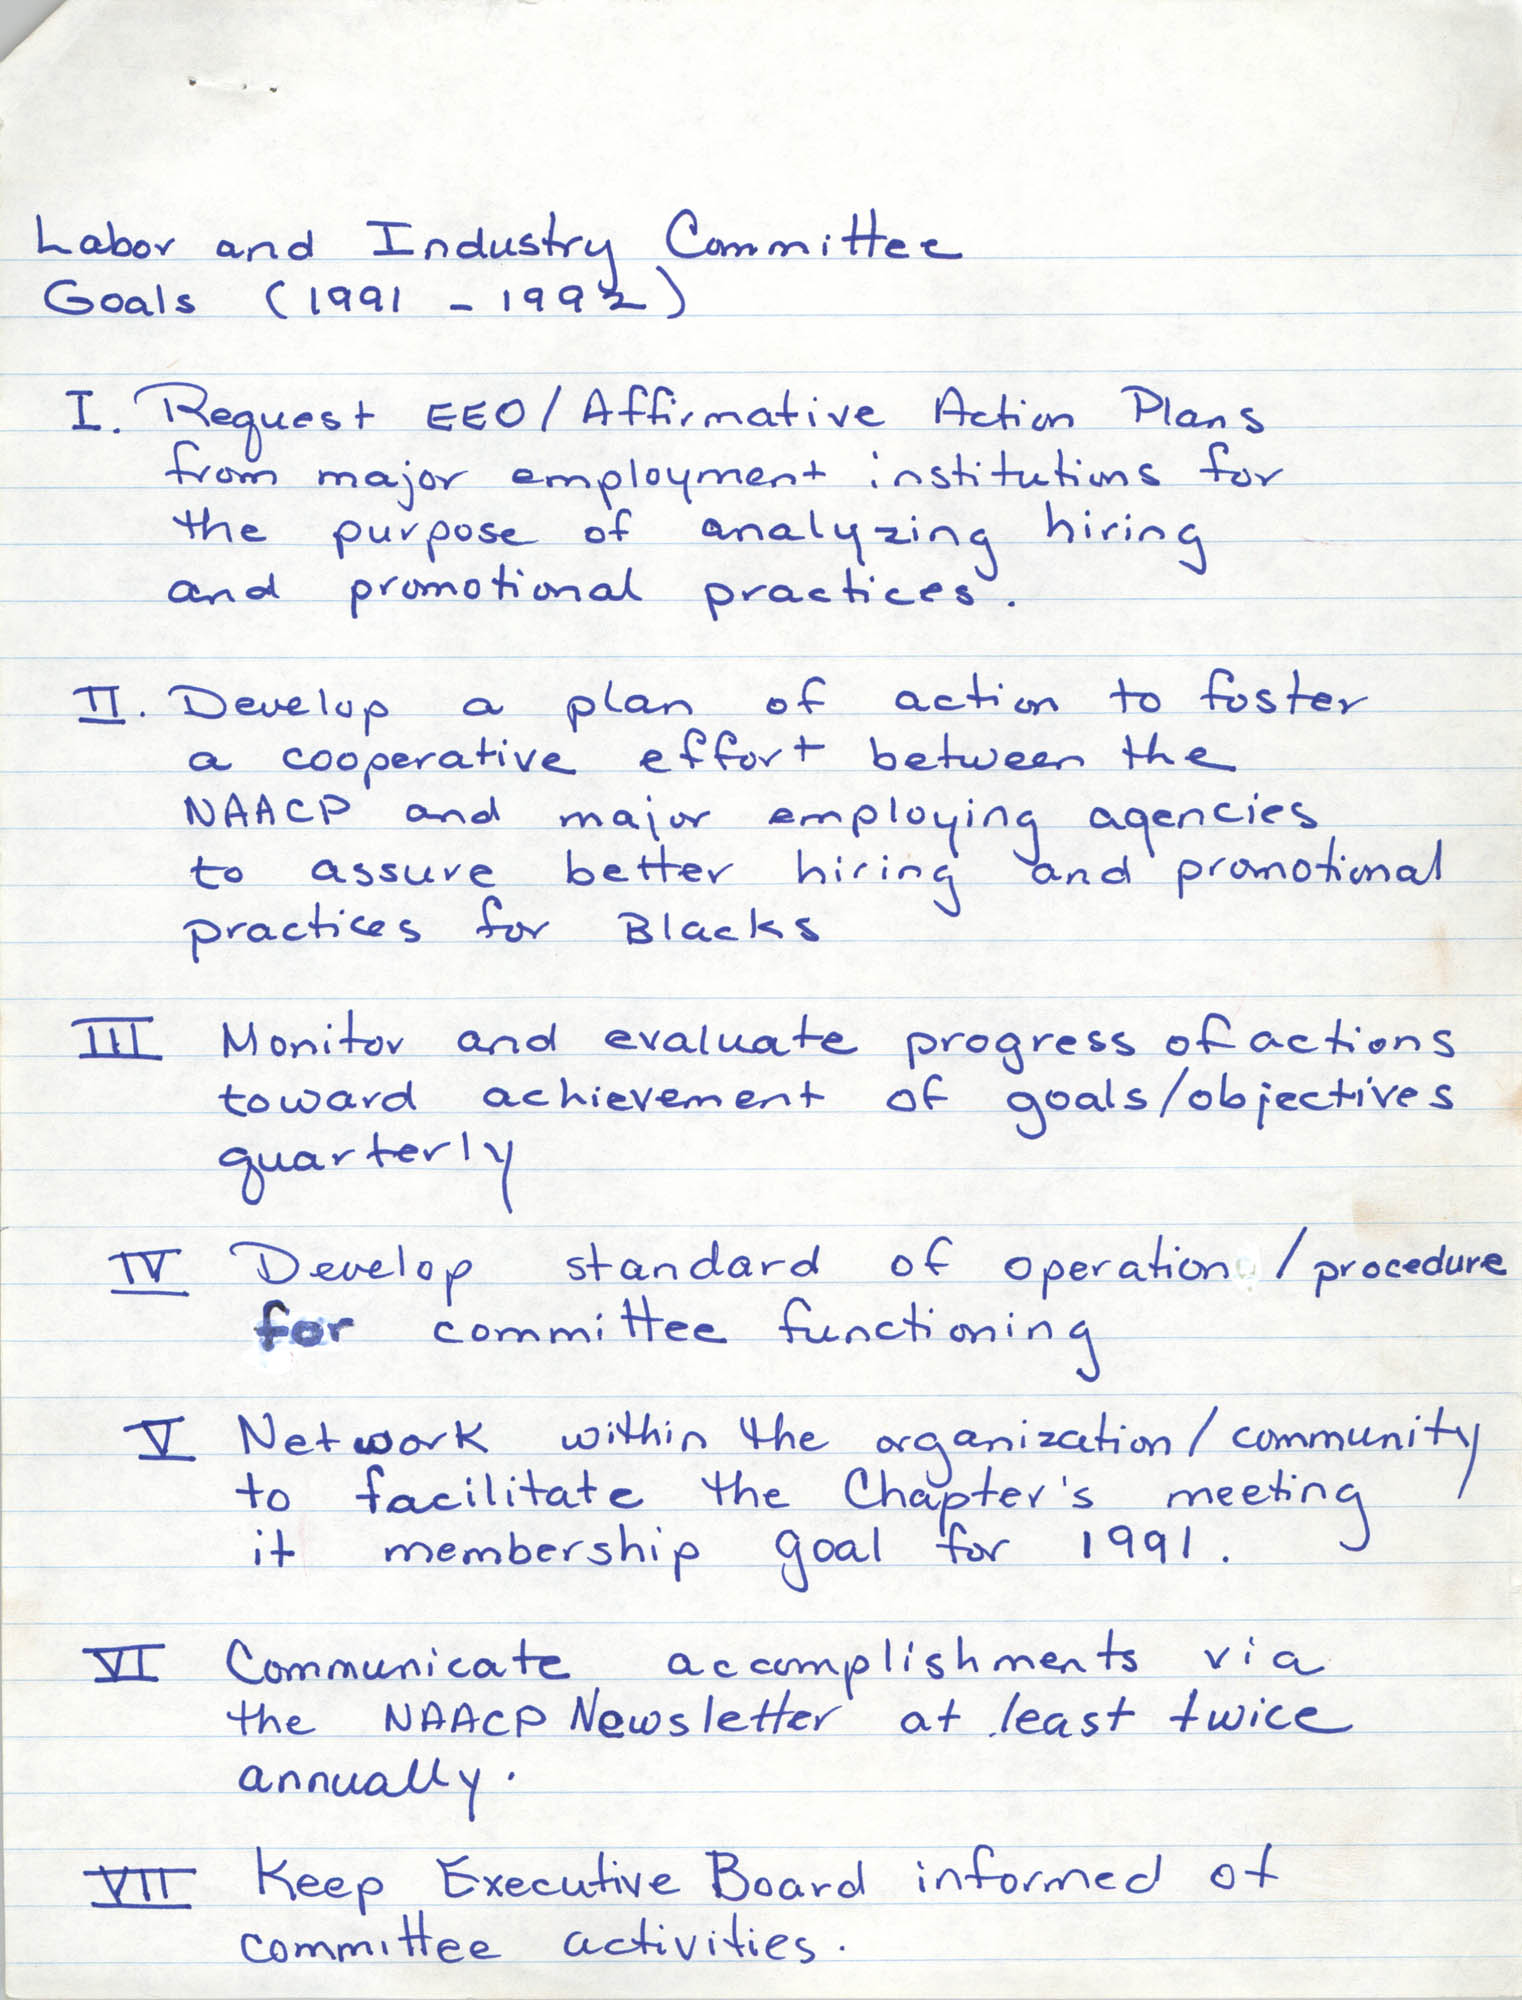 Charleston Branch of the NAACP Labor and Industry Committee Goals, 1991-1992